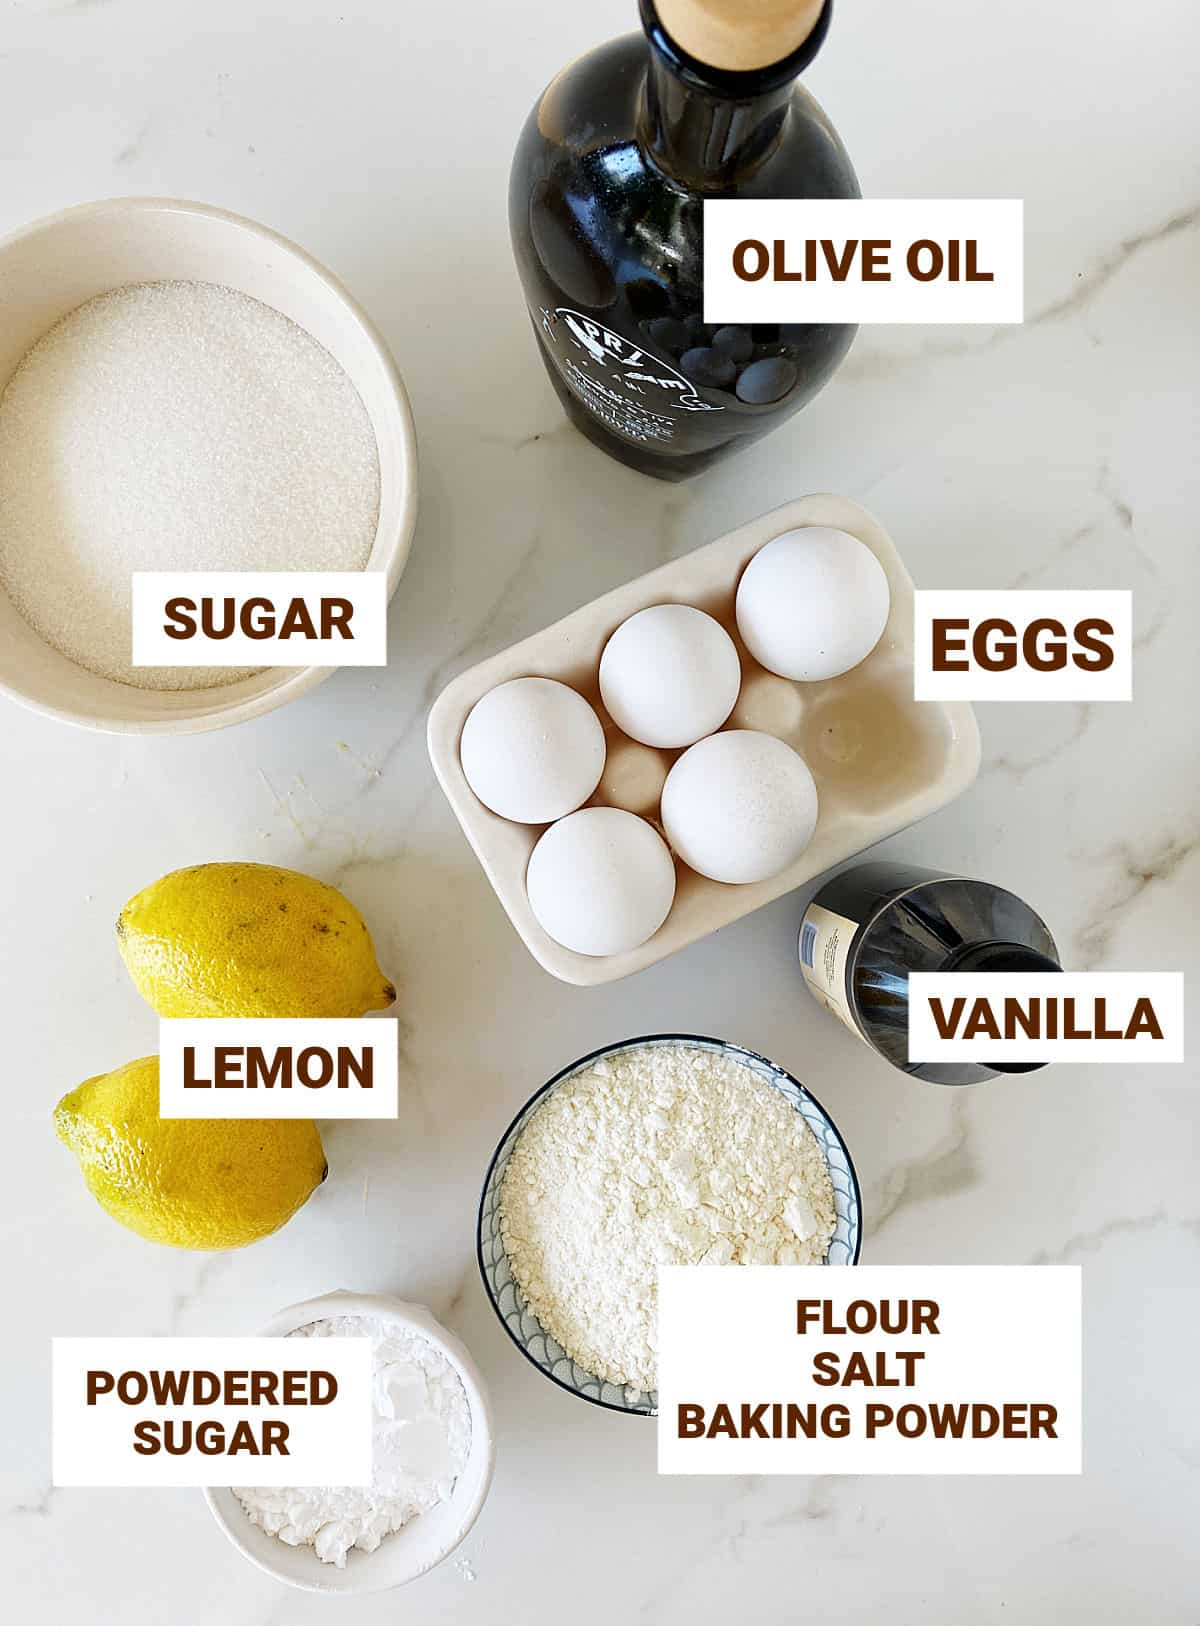 Ingredients for lemon olive oil cake in bowls and alone including eggs, vanilla and sugars